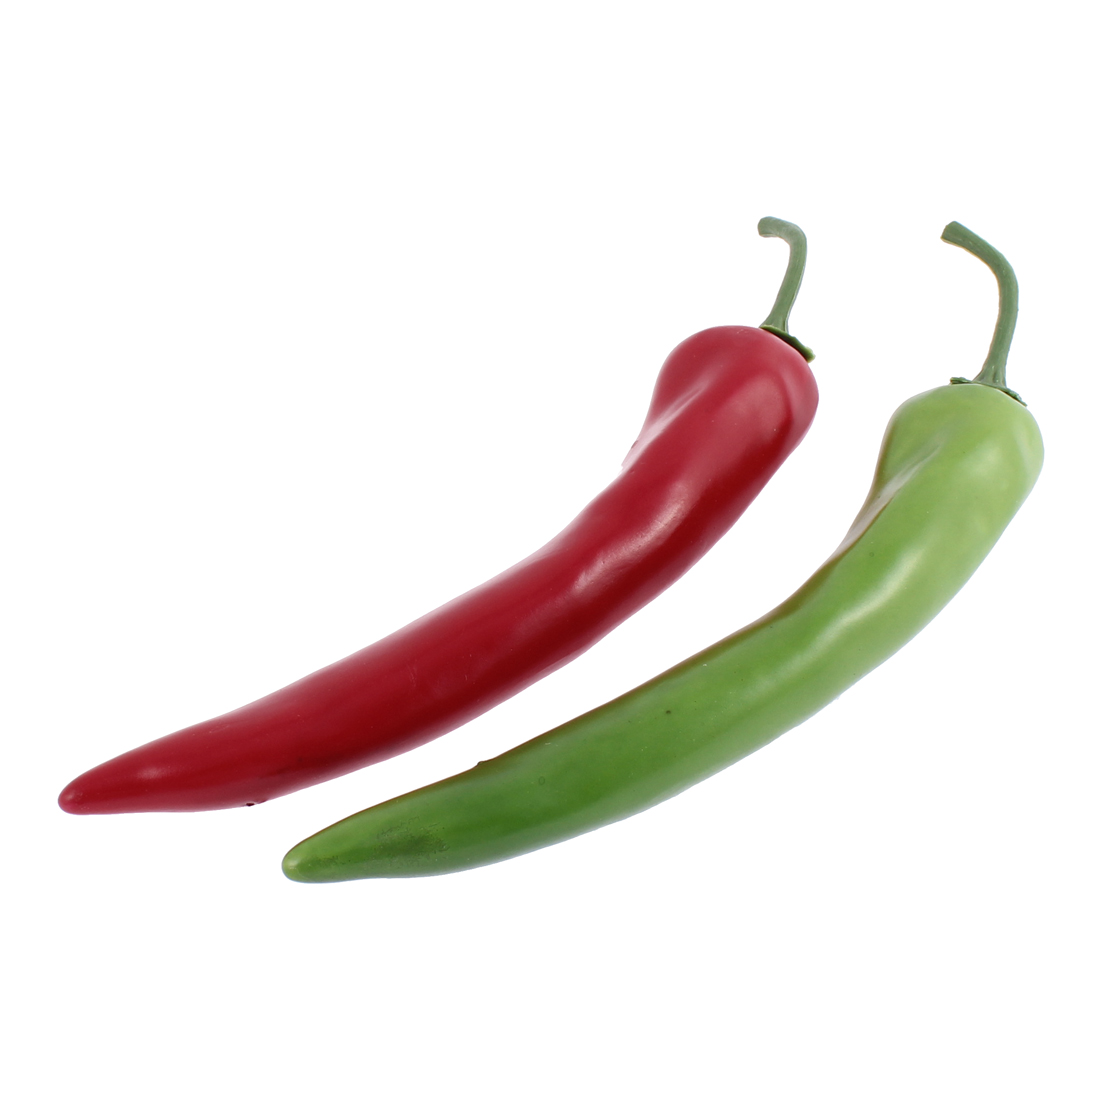 Home Decorative Vegetables Artificial Fake Chili Pepper 2 Pcs